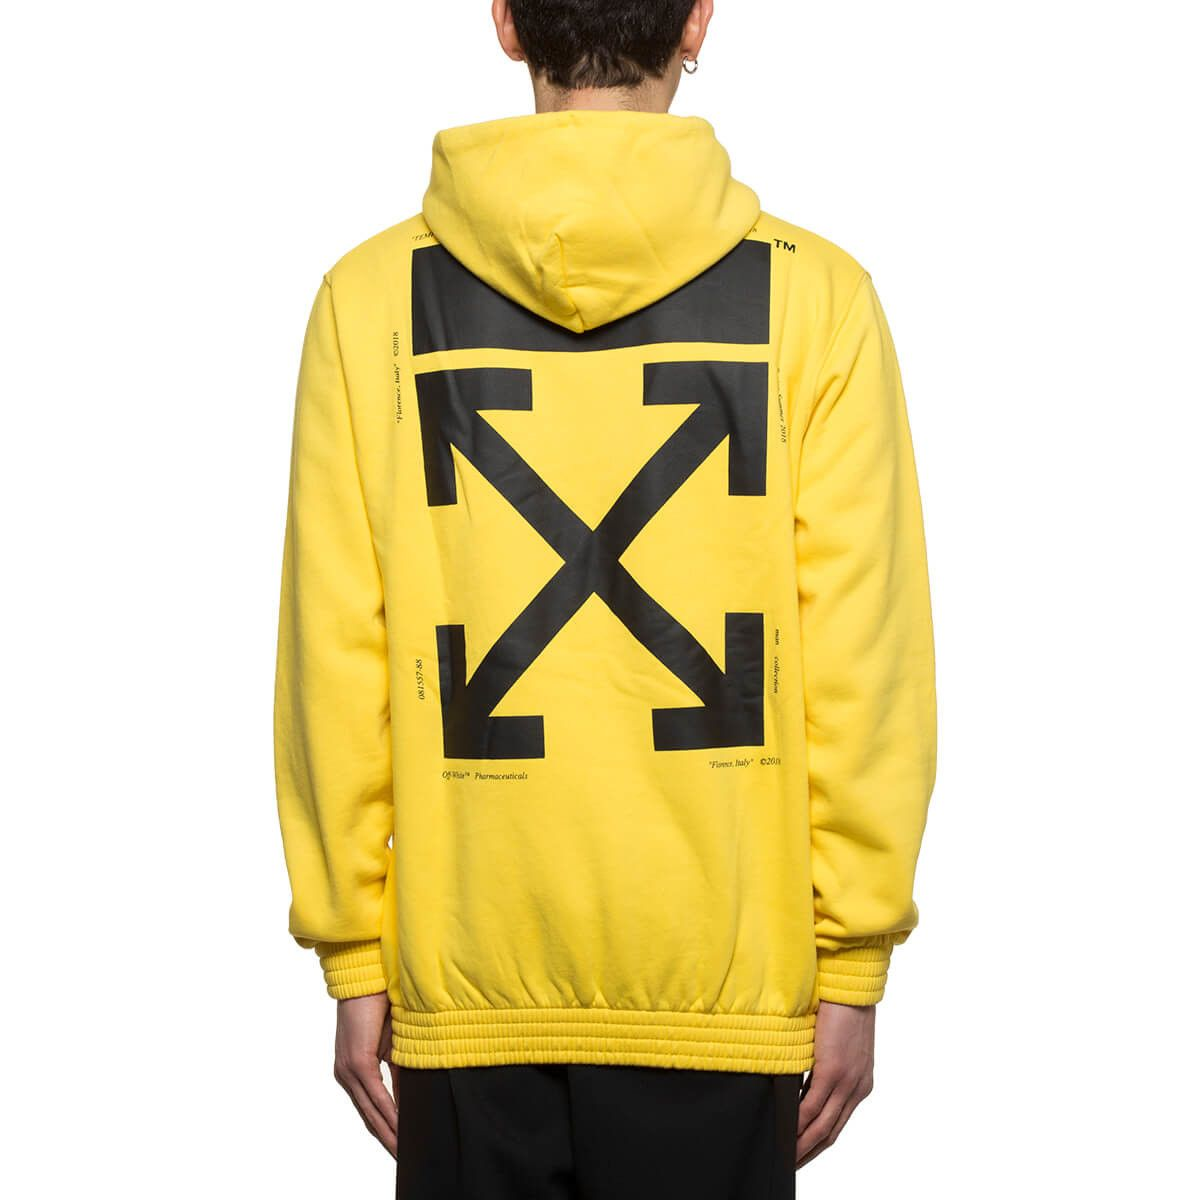 090066b795b6aa Hands hoodie from the S/S2018 Off-White c/o Virgil Abloh collection in  yellow